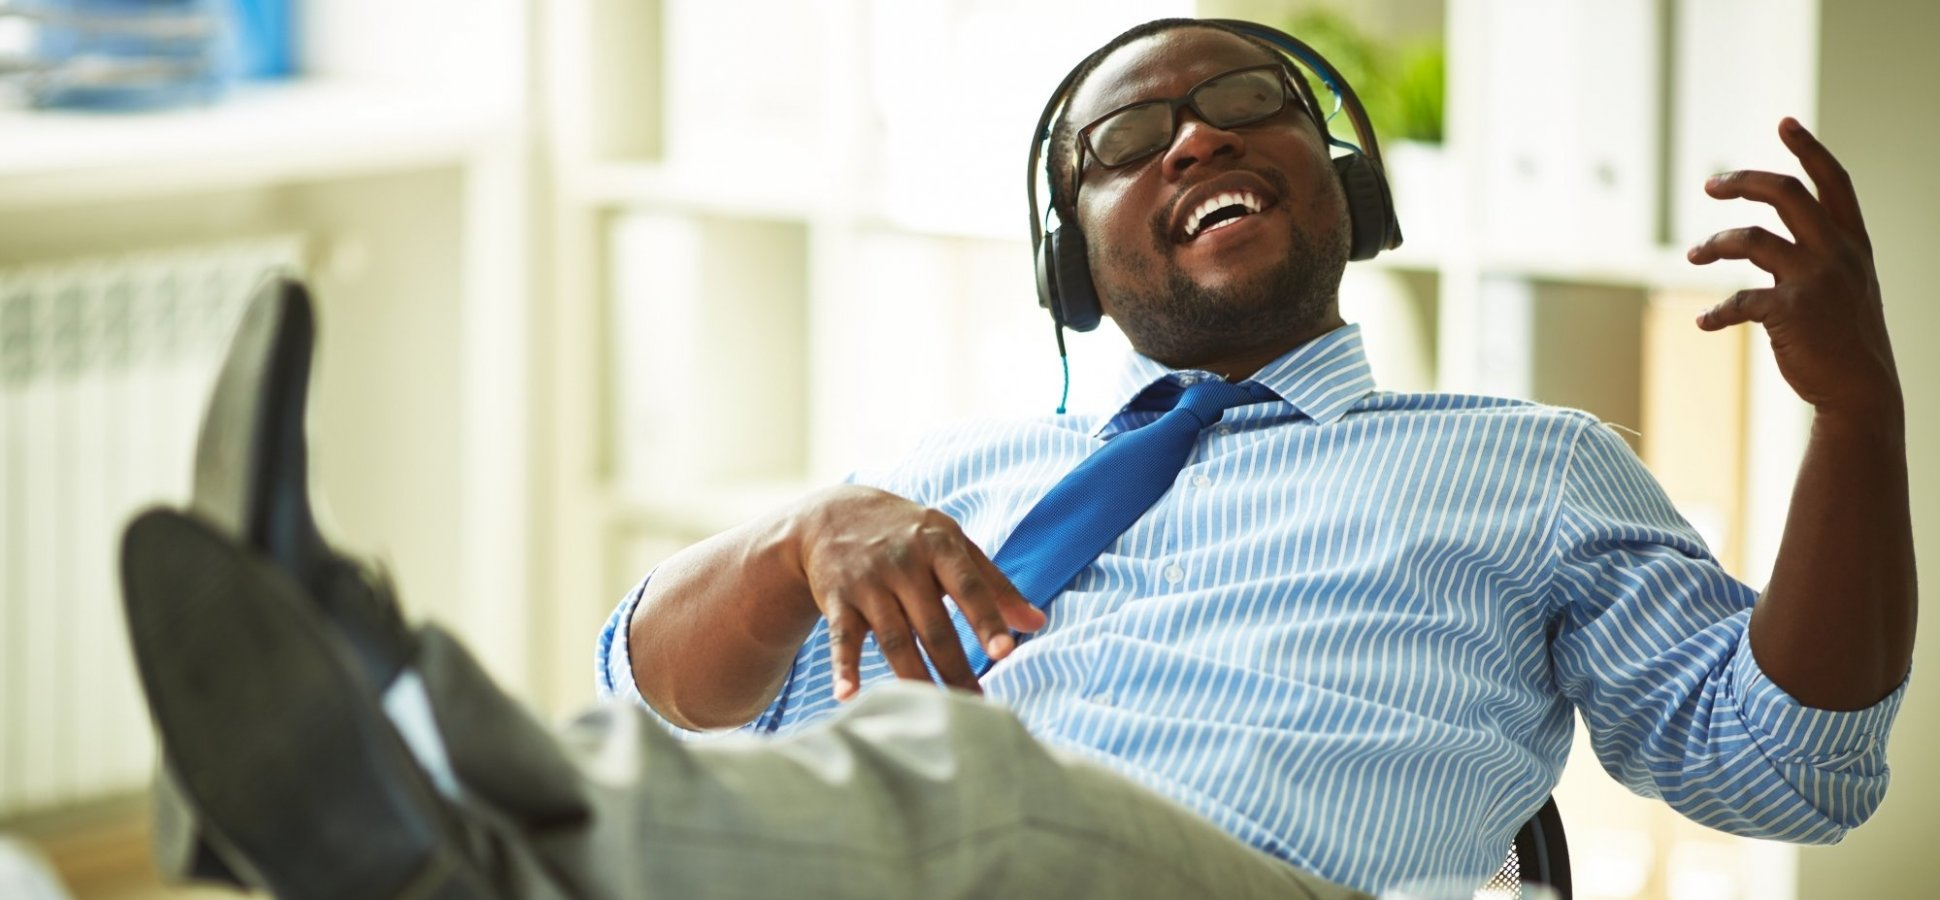 Unless You Do This, Neuroscience Says Listening to Music at Work Will Make You Less Productive